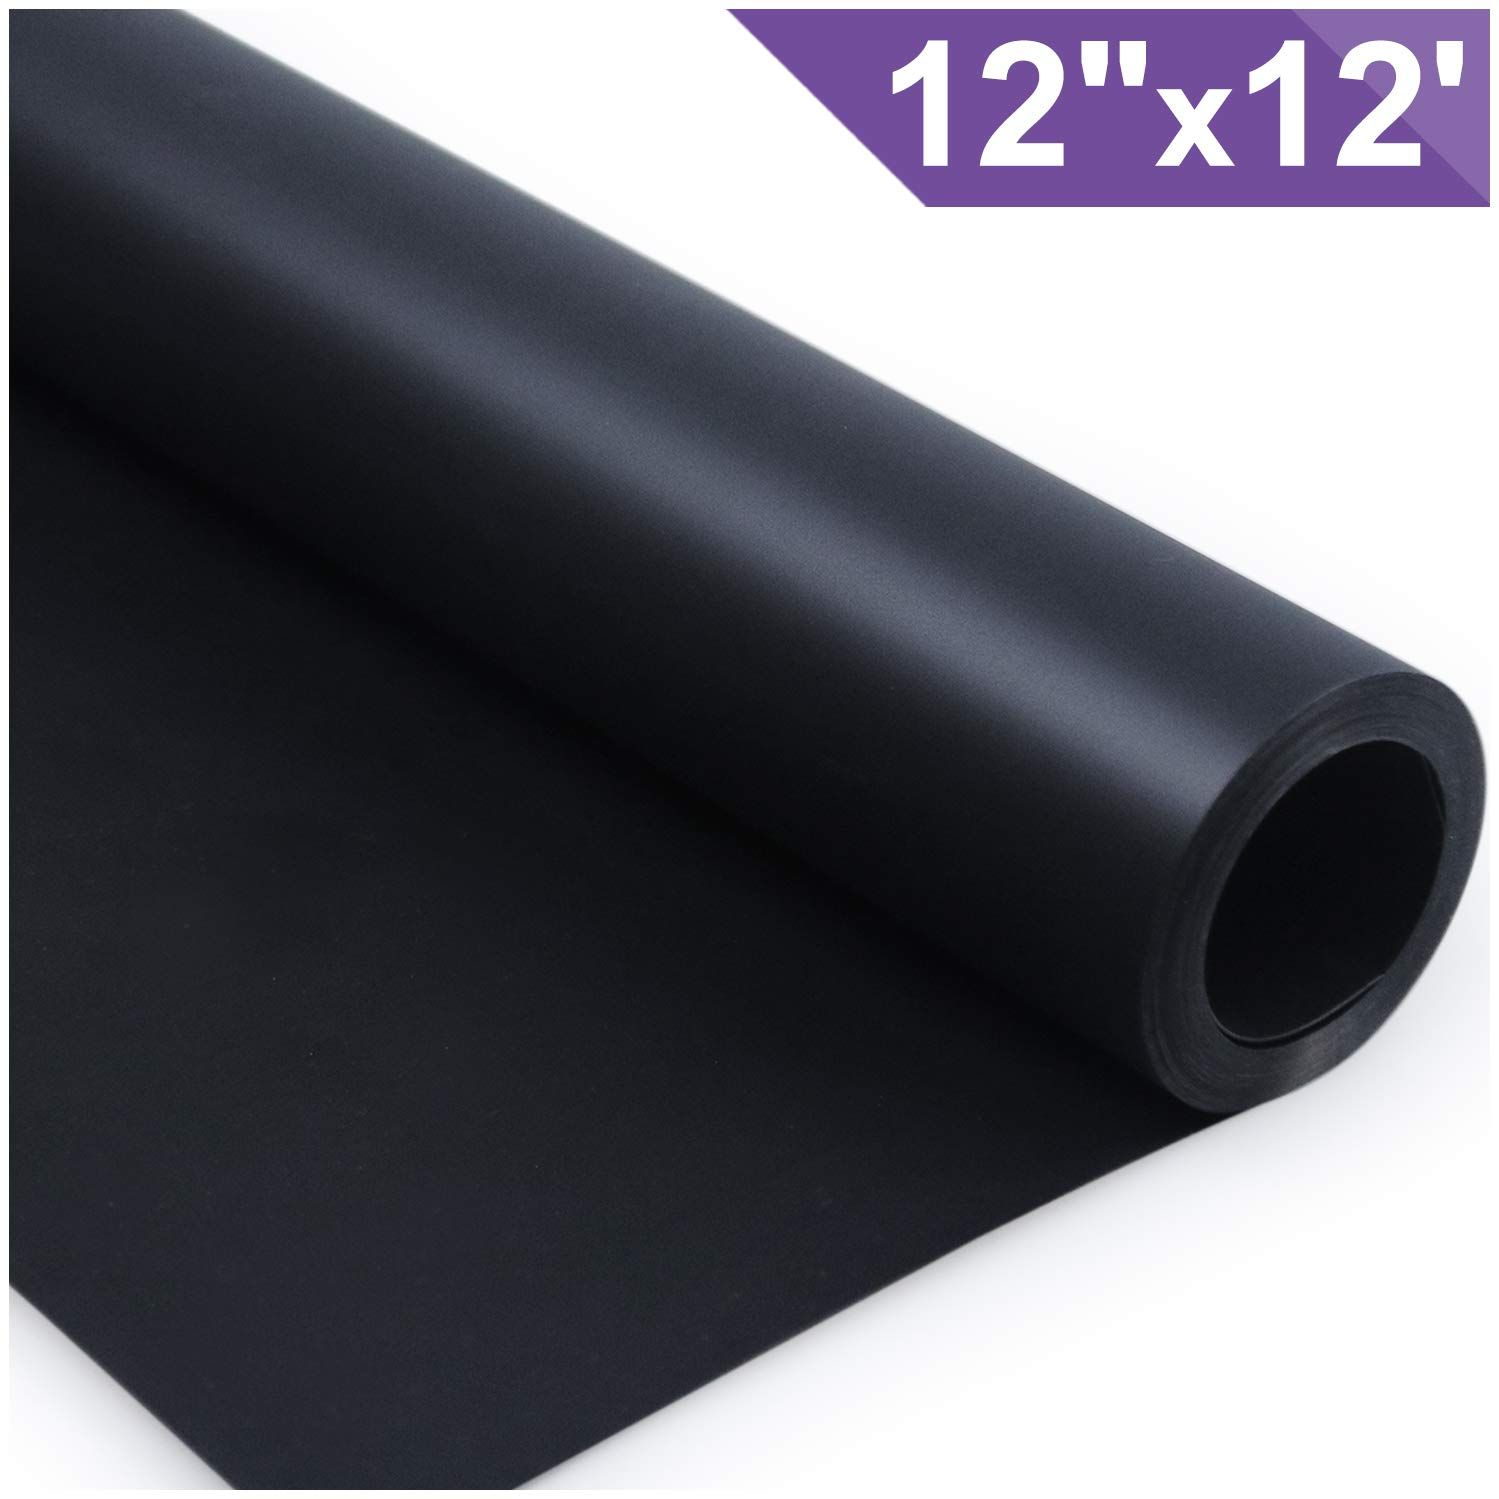 Arhiky Heat Transfer Vinyl Htv For T Shirts 12 Inches By 12 Feet Rolls Black Elasticwaistbelt Phonecases Heat Transfer Vinyl Diy Vinyl Heat Press Designs